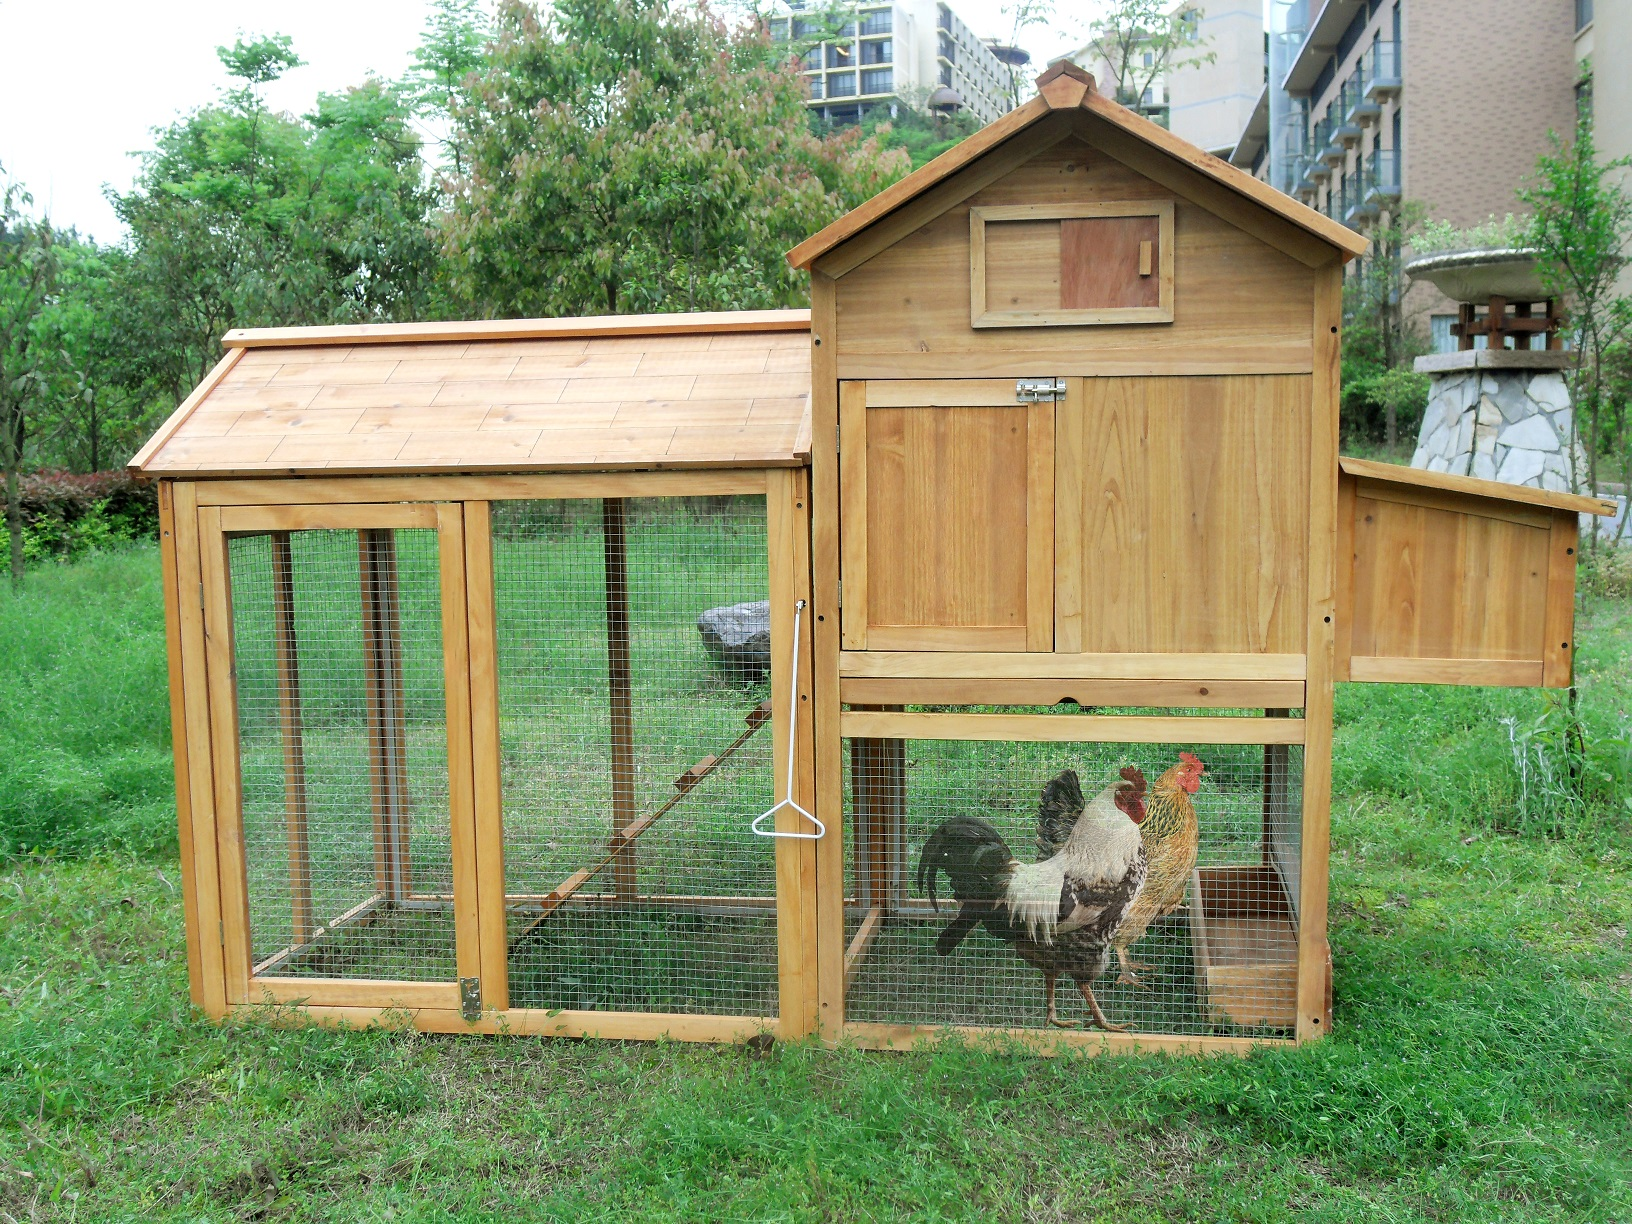 Deluxe wooden chicken poultry rabbit pet coop hen house for Large chicken house